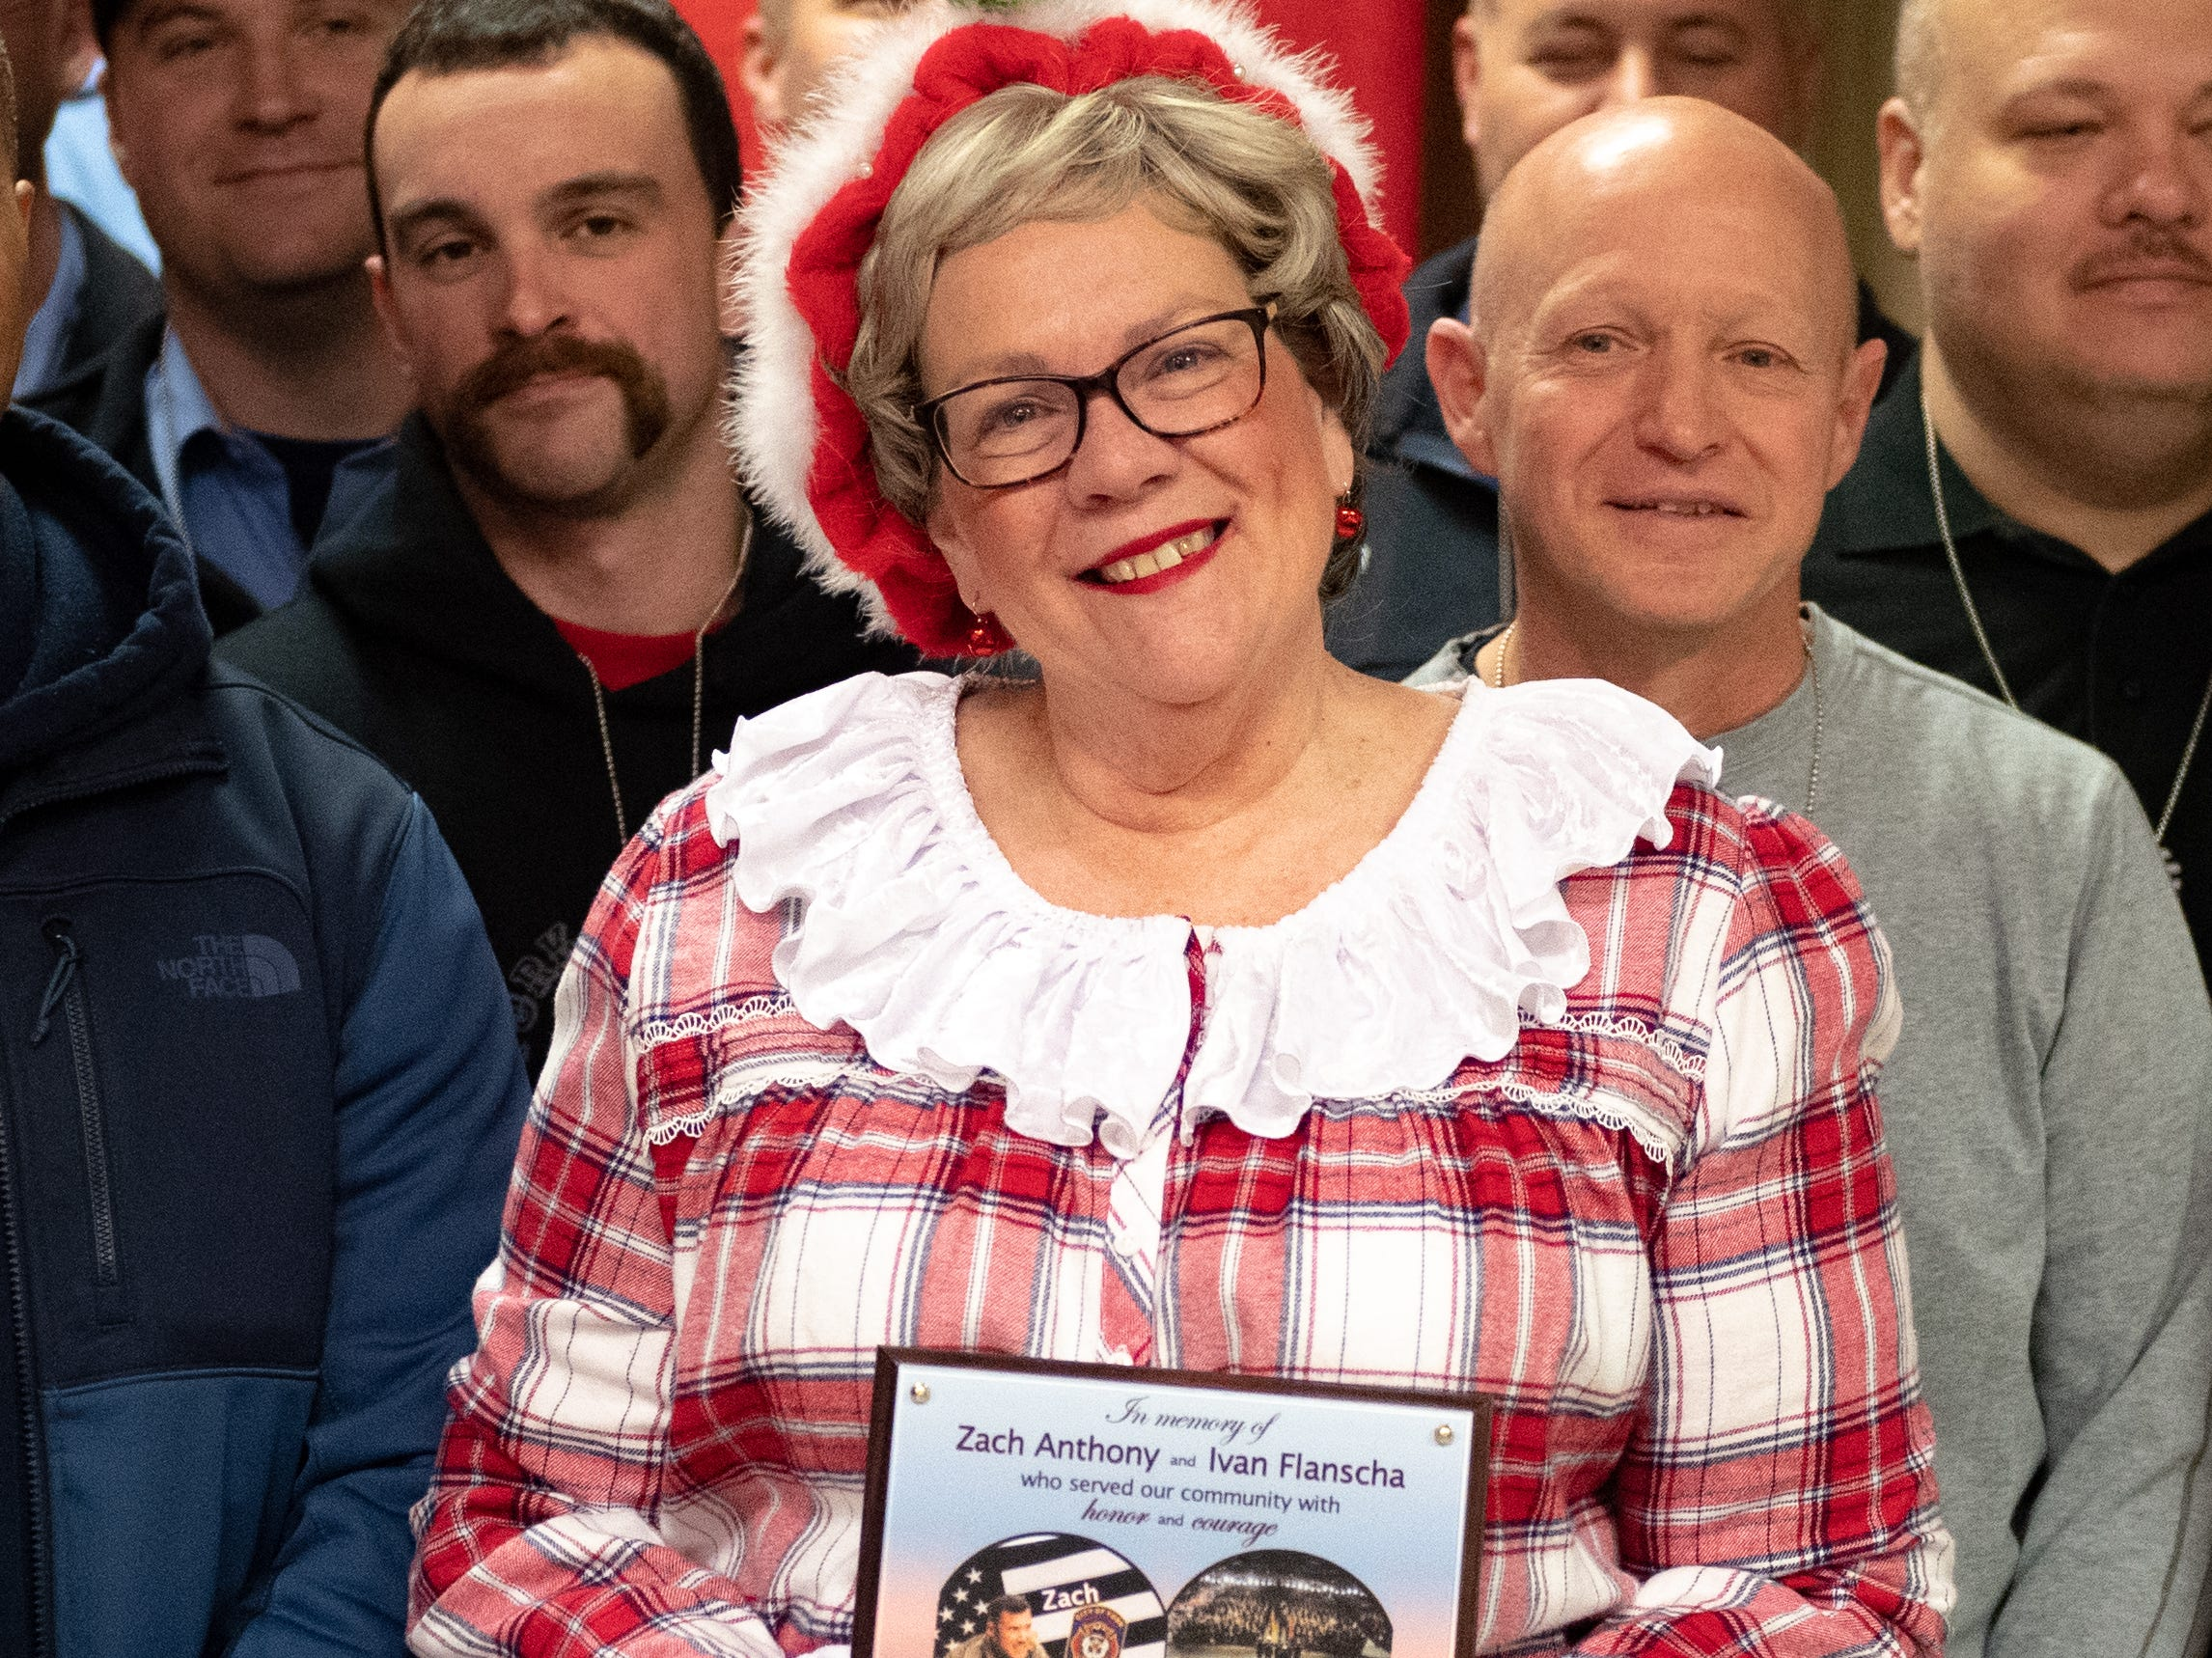 Mrs. Claus stands front and center holding the plaque, December 13, 2018.